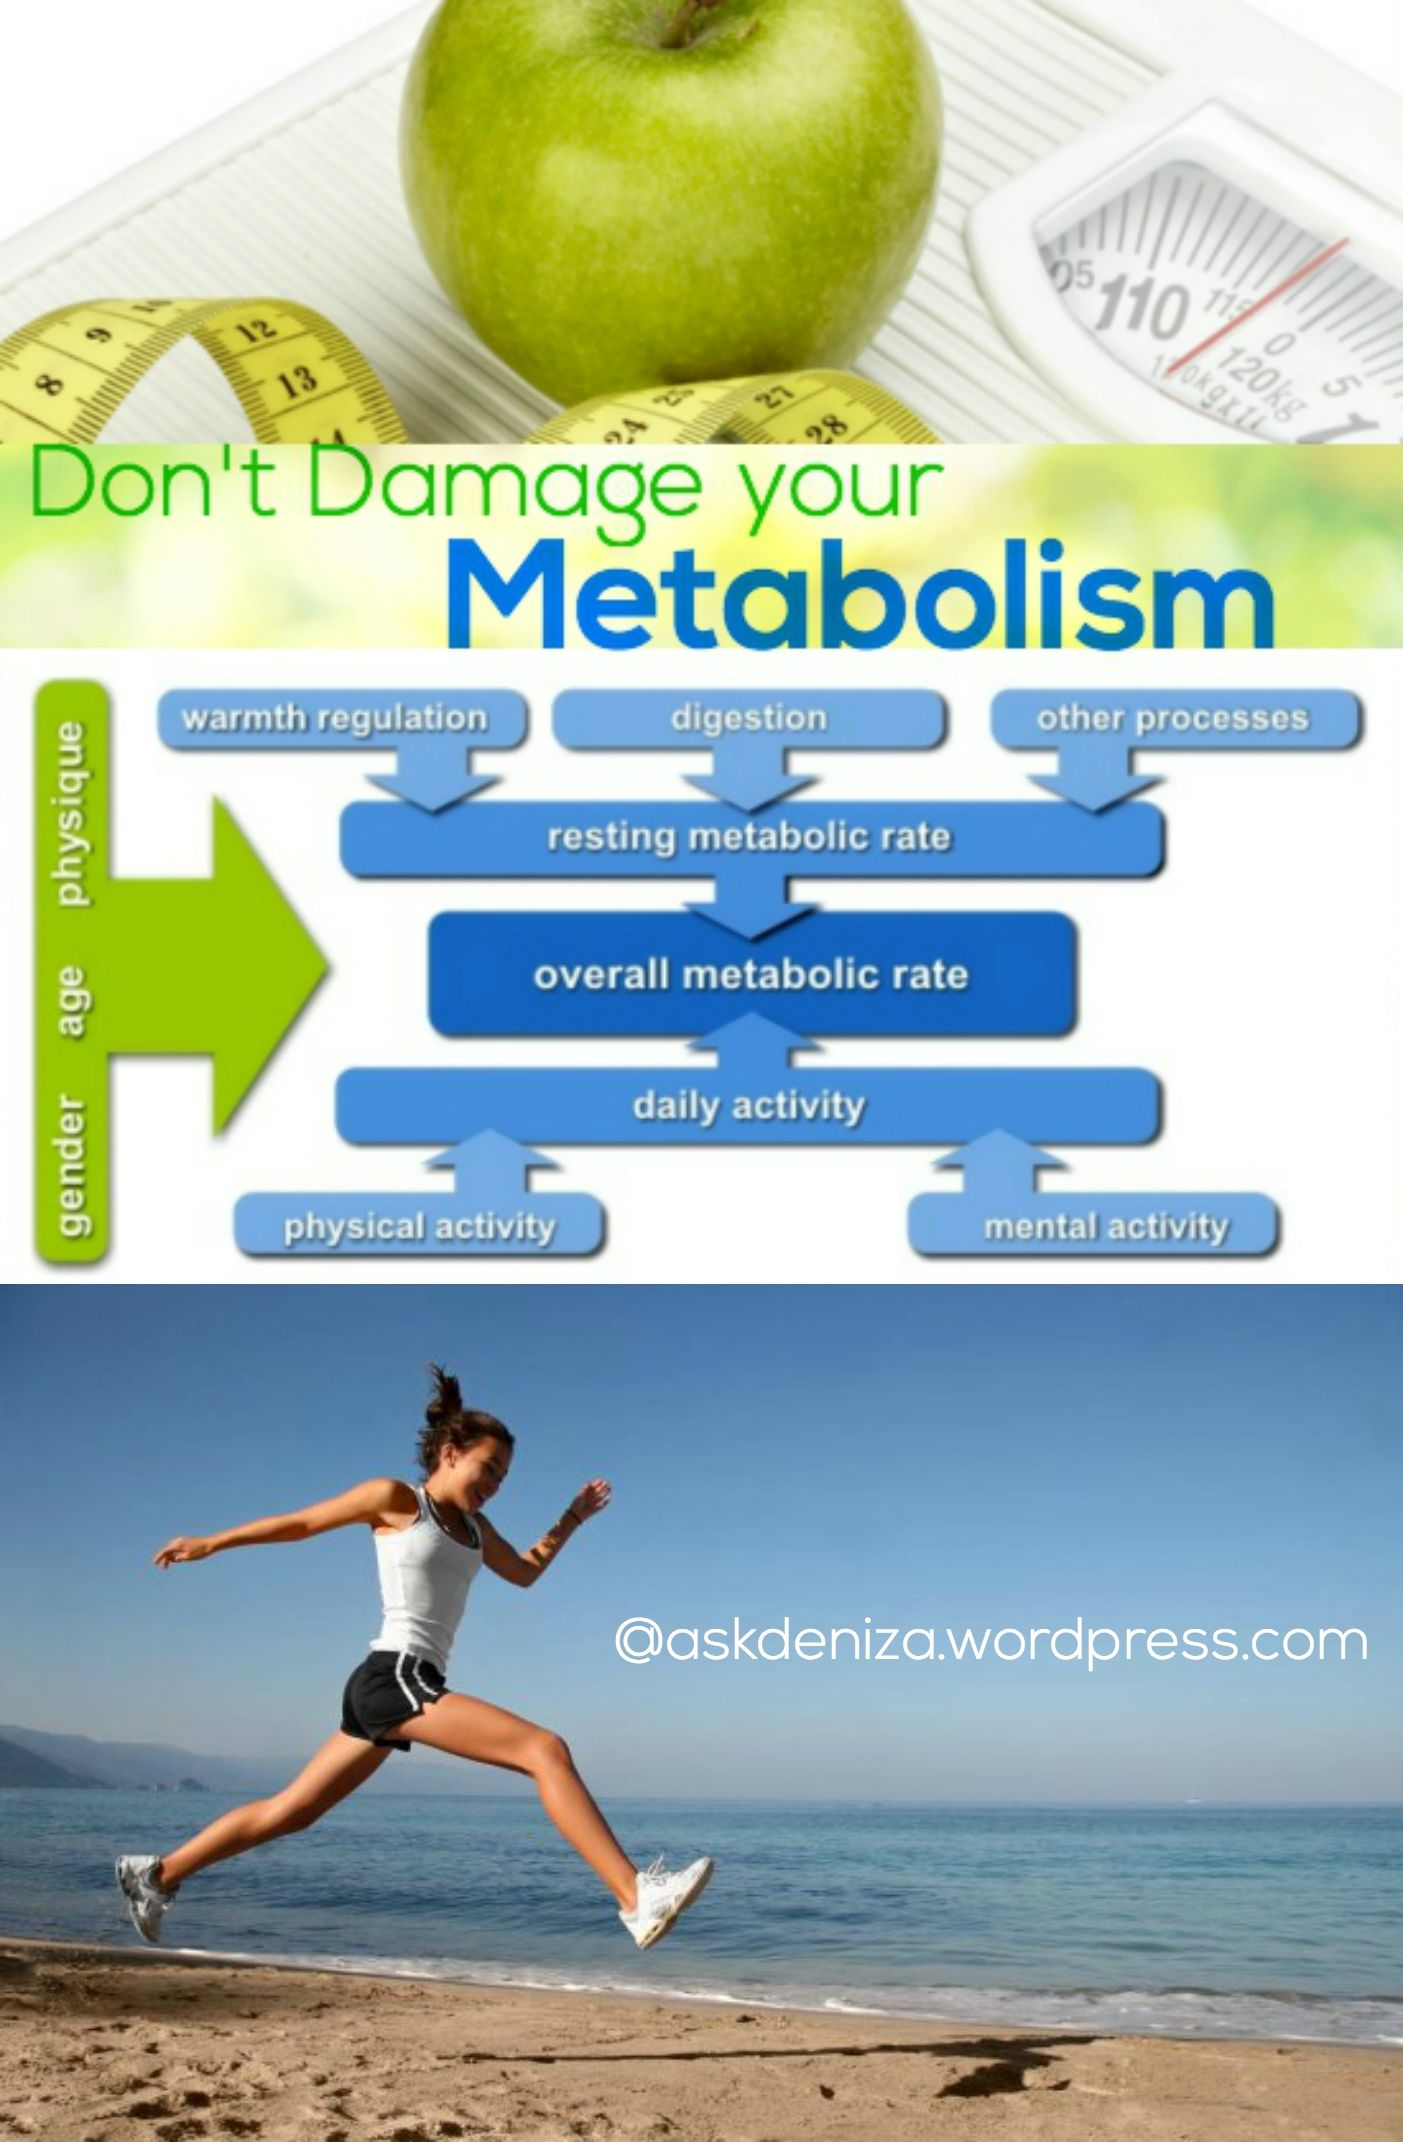 All about Metabolic Damage and how to avoid it. My guide